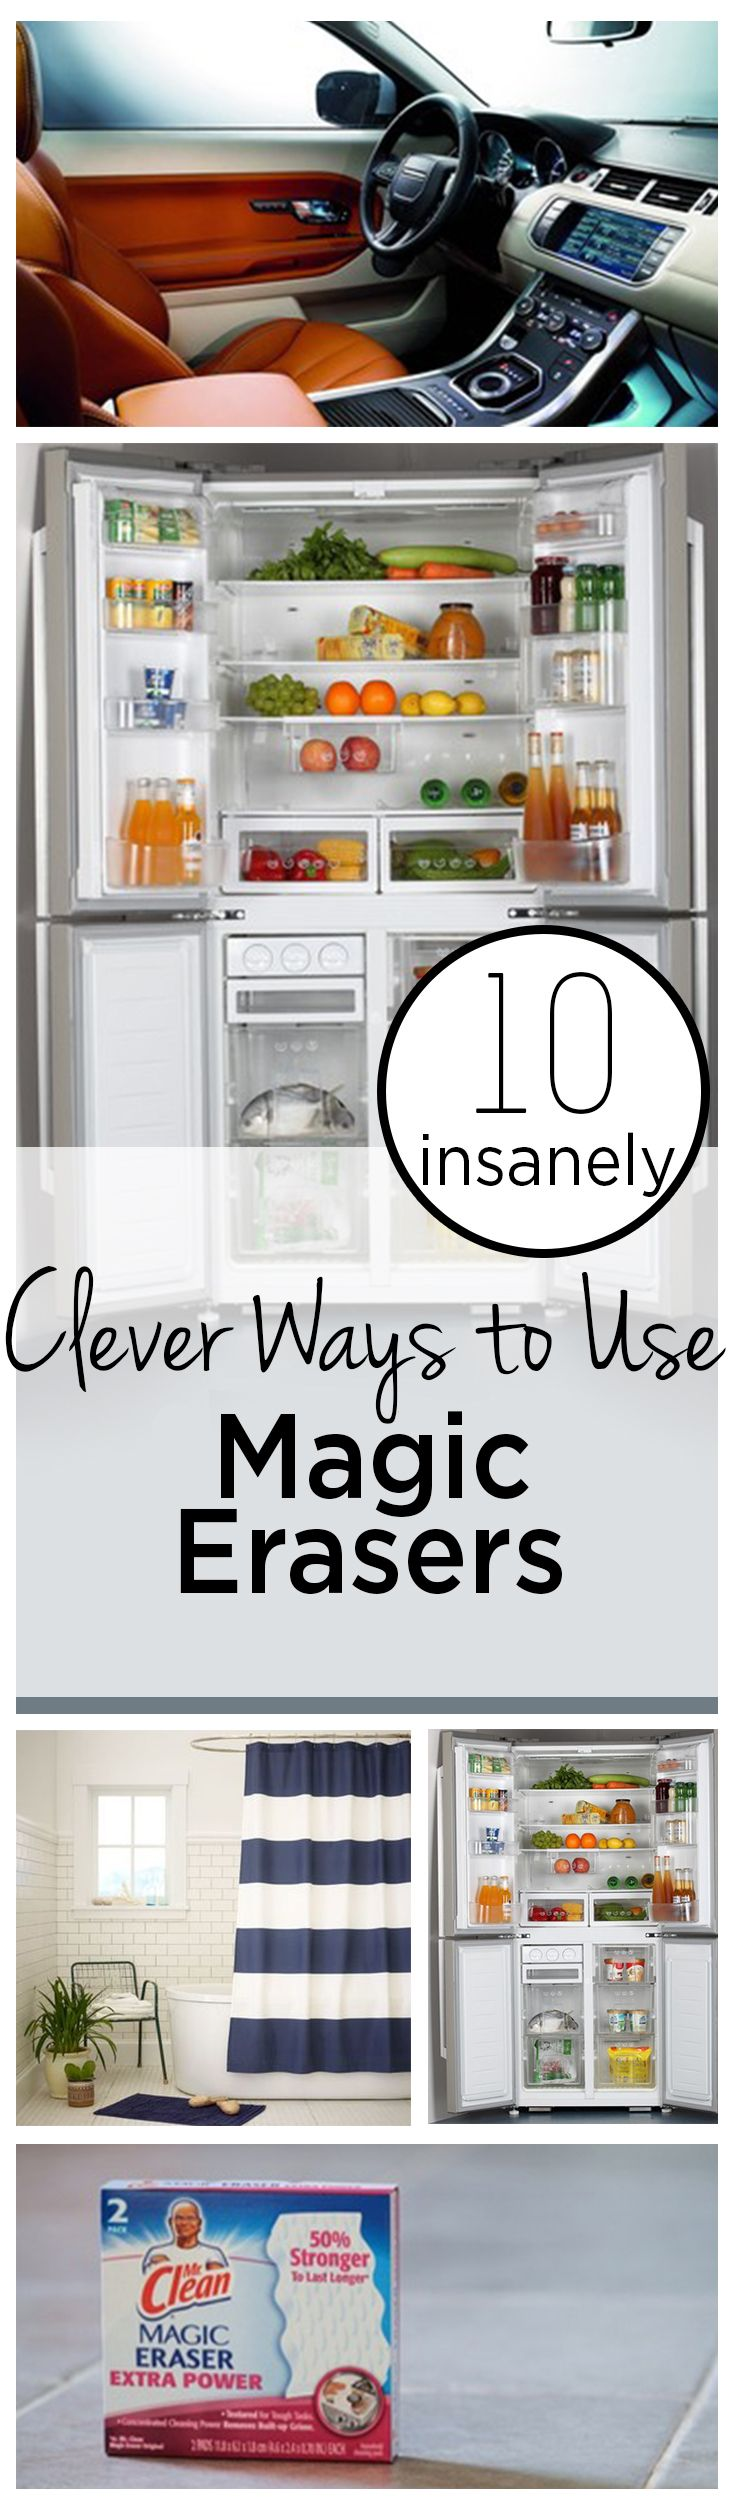 449 best Cleaning Tips - DIY Recipes images on Pinterest | Cleaning ...